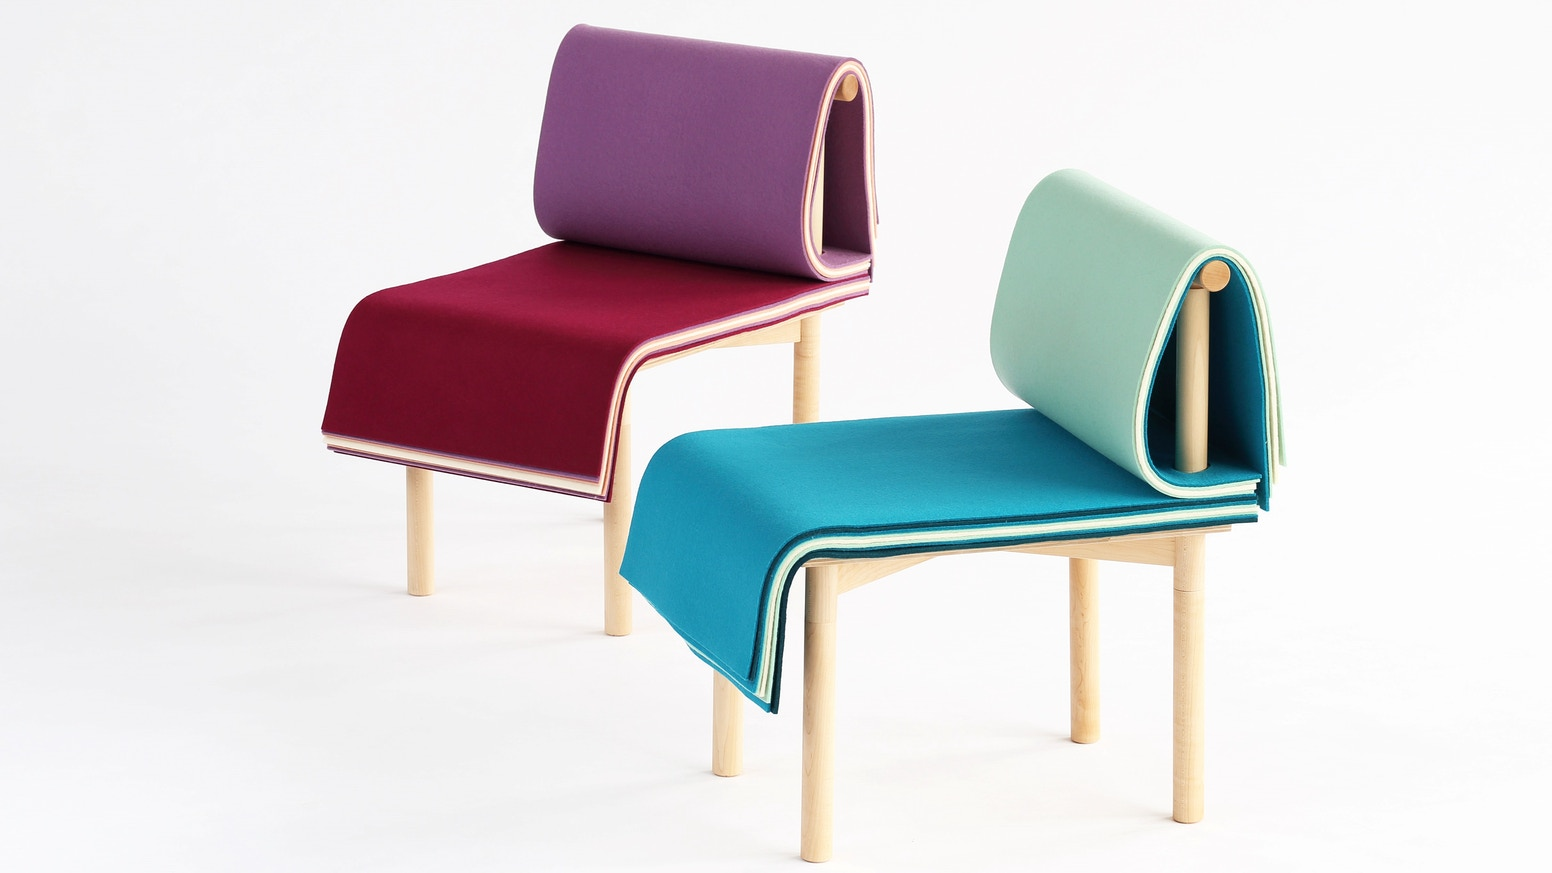 The delicate process of adjusting the seat height, backrest, and color of your chair is now easy as flipping a page.